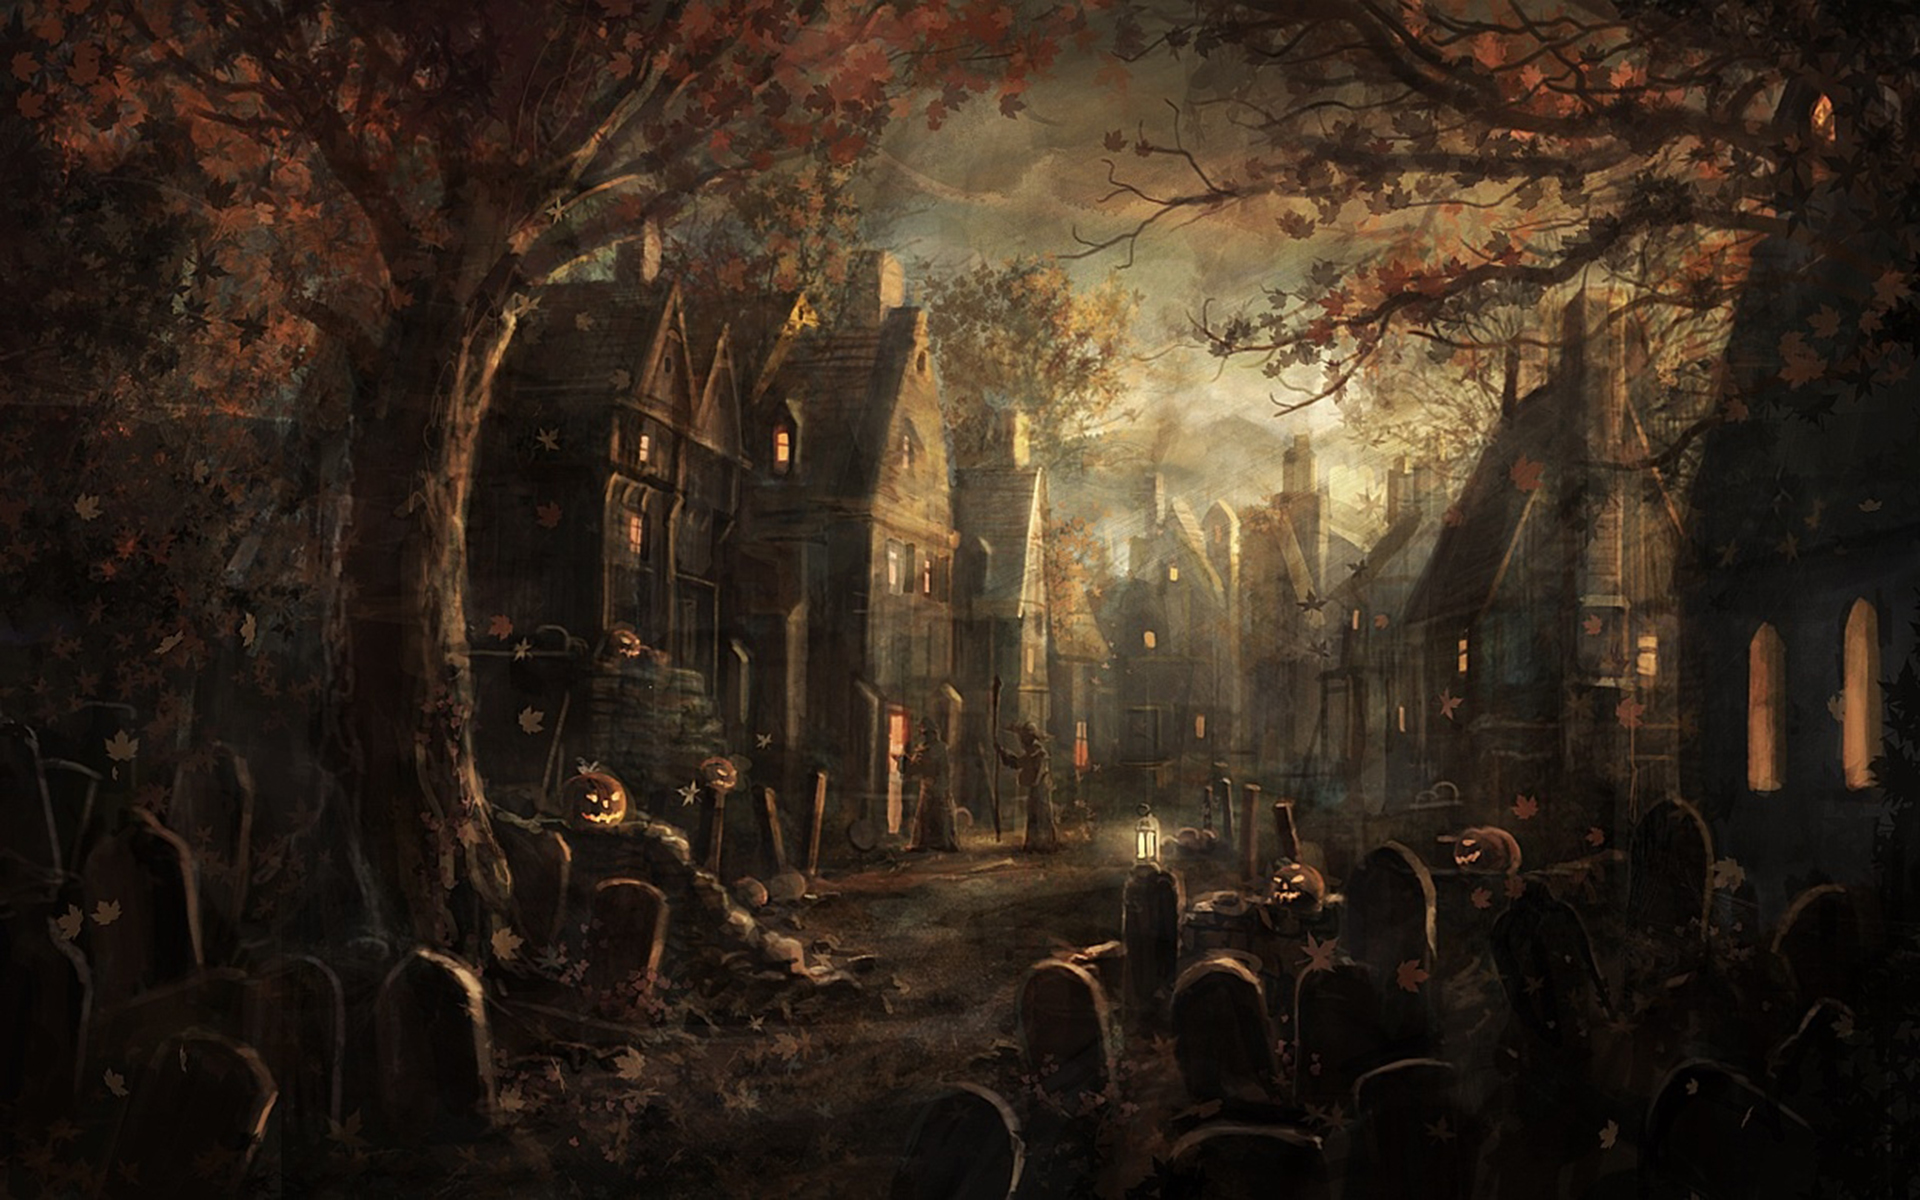 Best Wallpaper Halloween Landscape - 5920534148120bb76f9851ae6d2710e8f09a91a3  You Should Have_289512.jpg